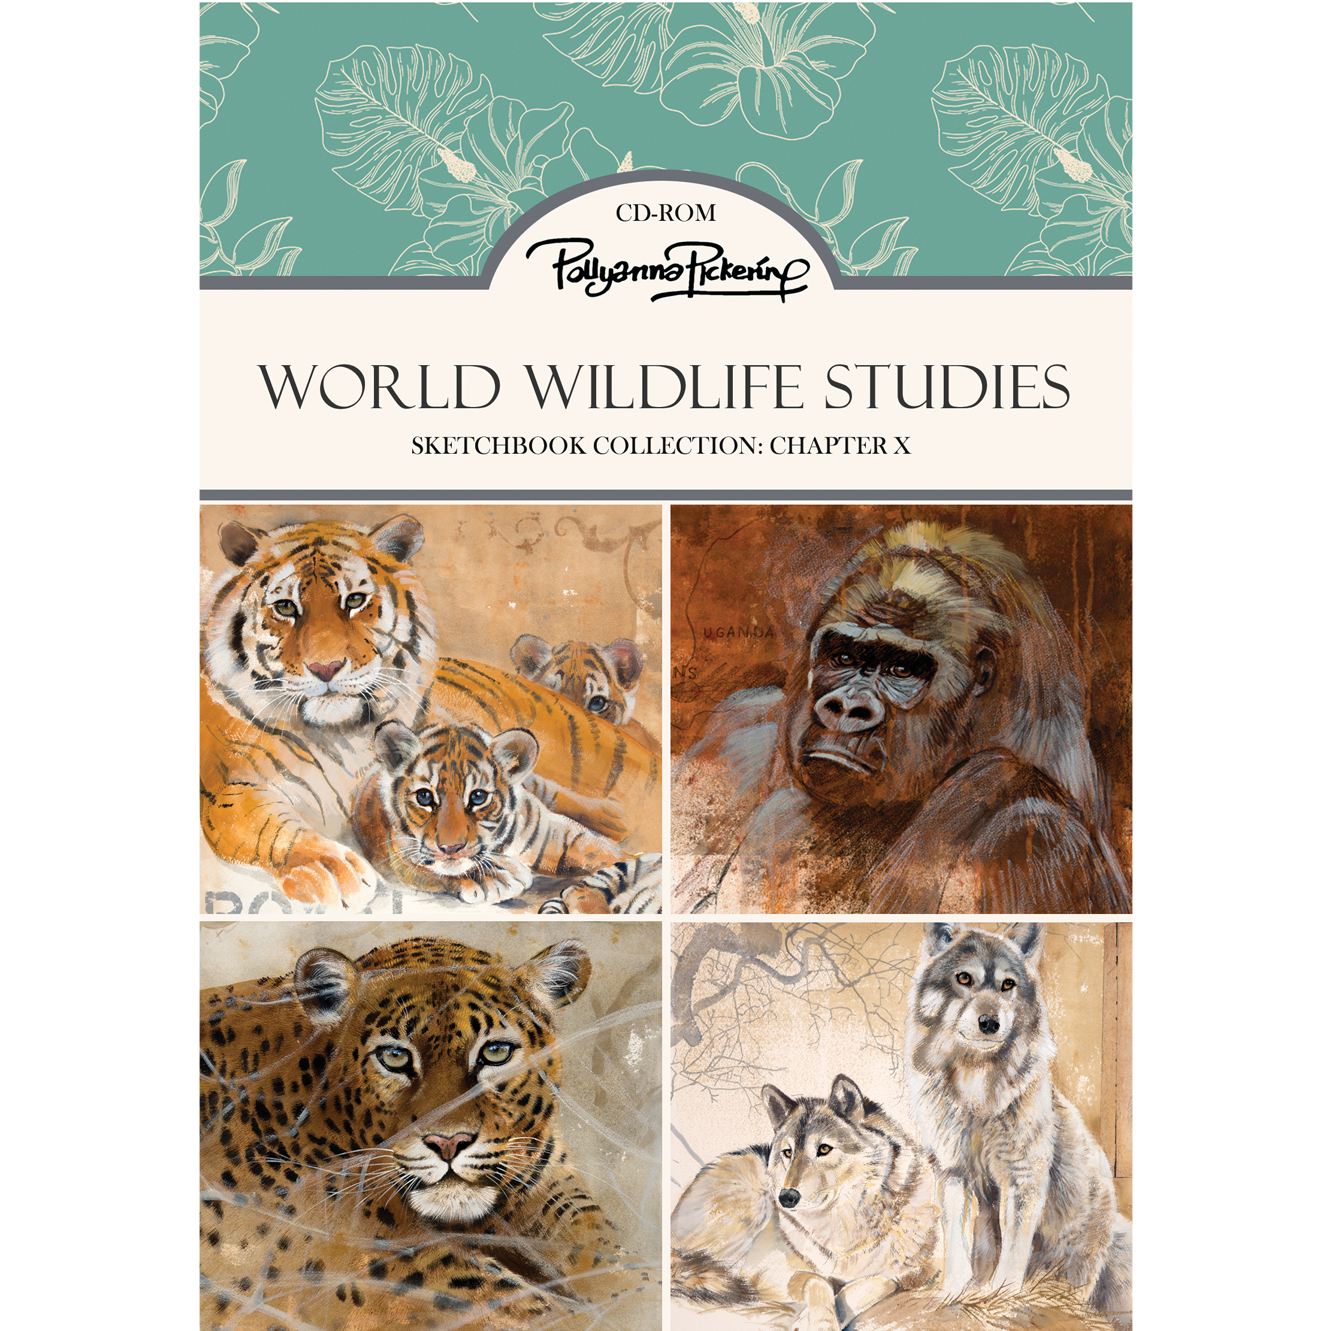 Pollyanna Pickering's Sketchbook Collection Chapter X World Wildlife Studies – CD-Rom